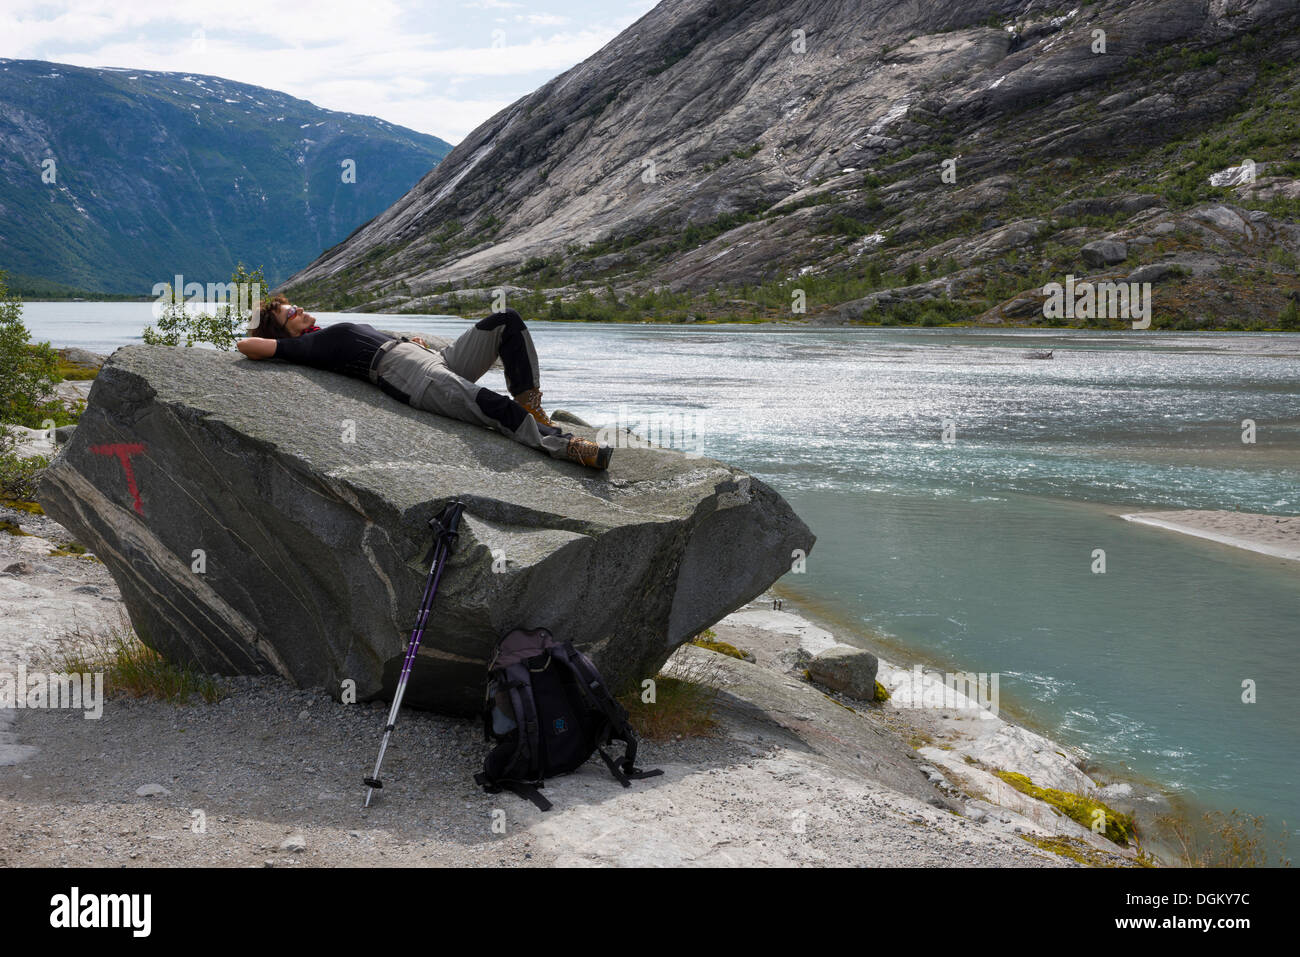 Woman wearing hiking clothing lying on a prominent boulder at the glacial lake of Nigardsbrevatnet, Jostedal - Stock Image